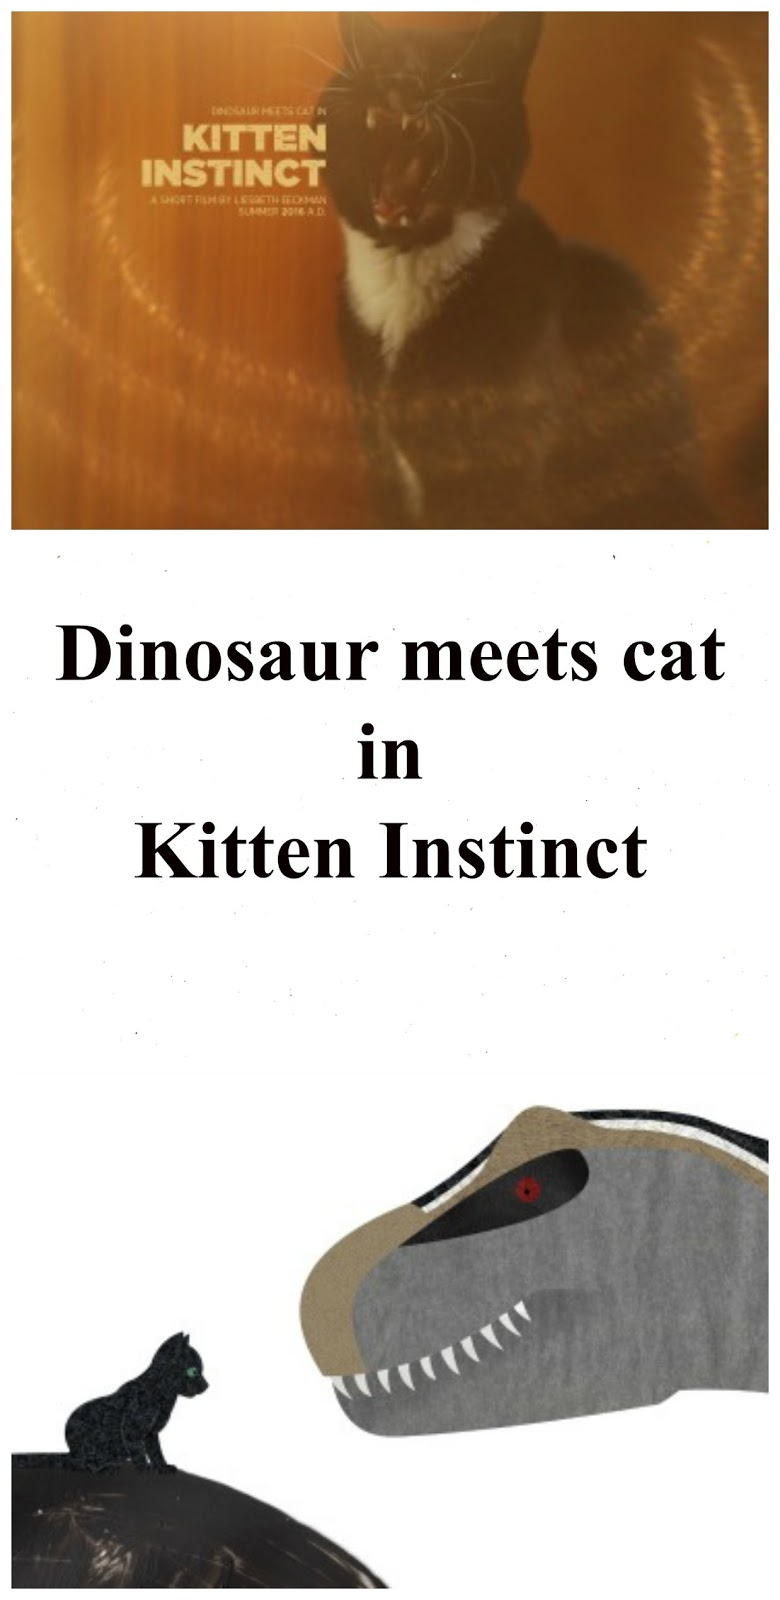 dinosaur meets cat